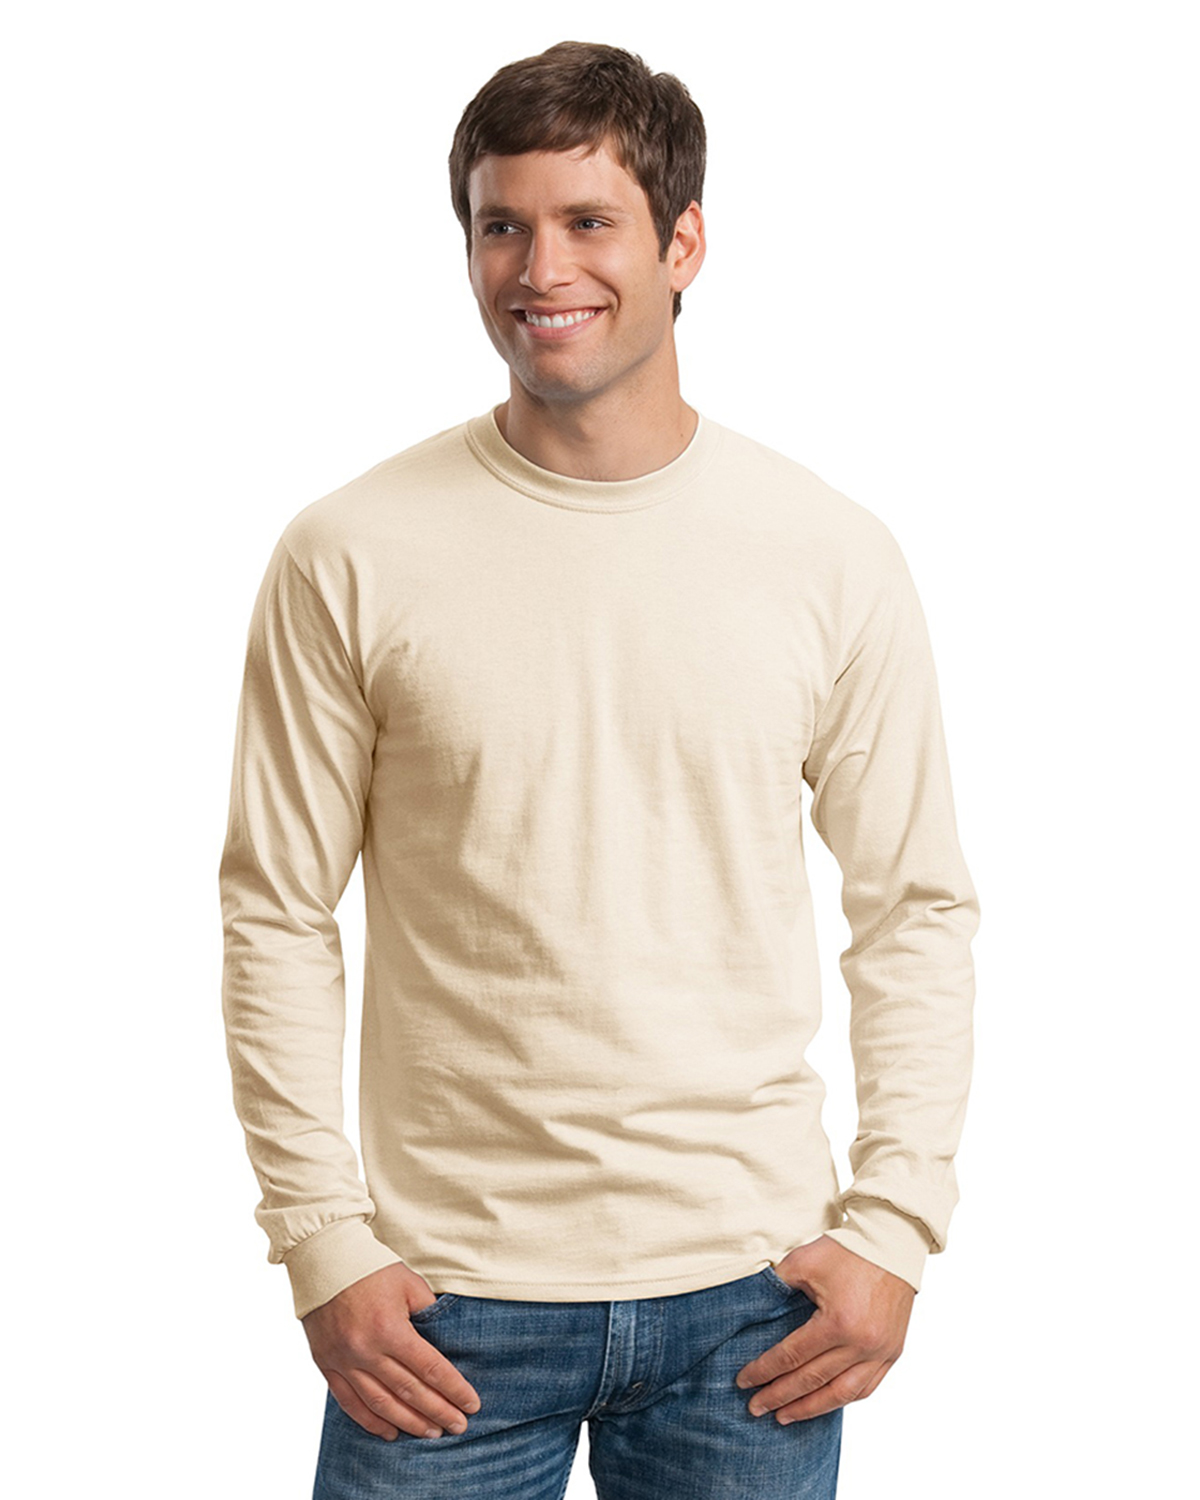 Mens ultra 100 cotton long sleeve t shirts at big and for Mens 100 cotton long sleeve t shirts